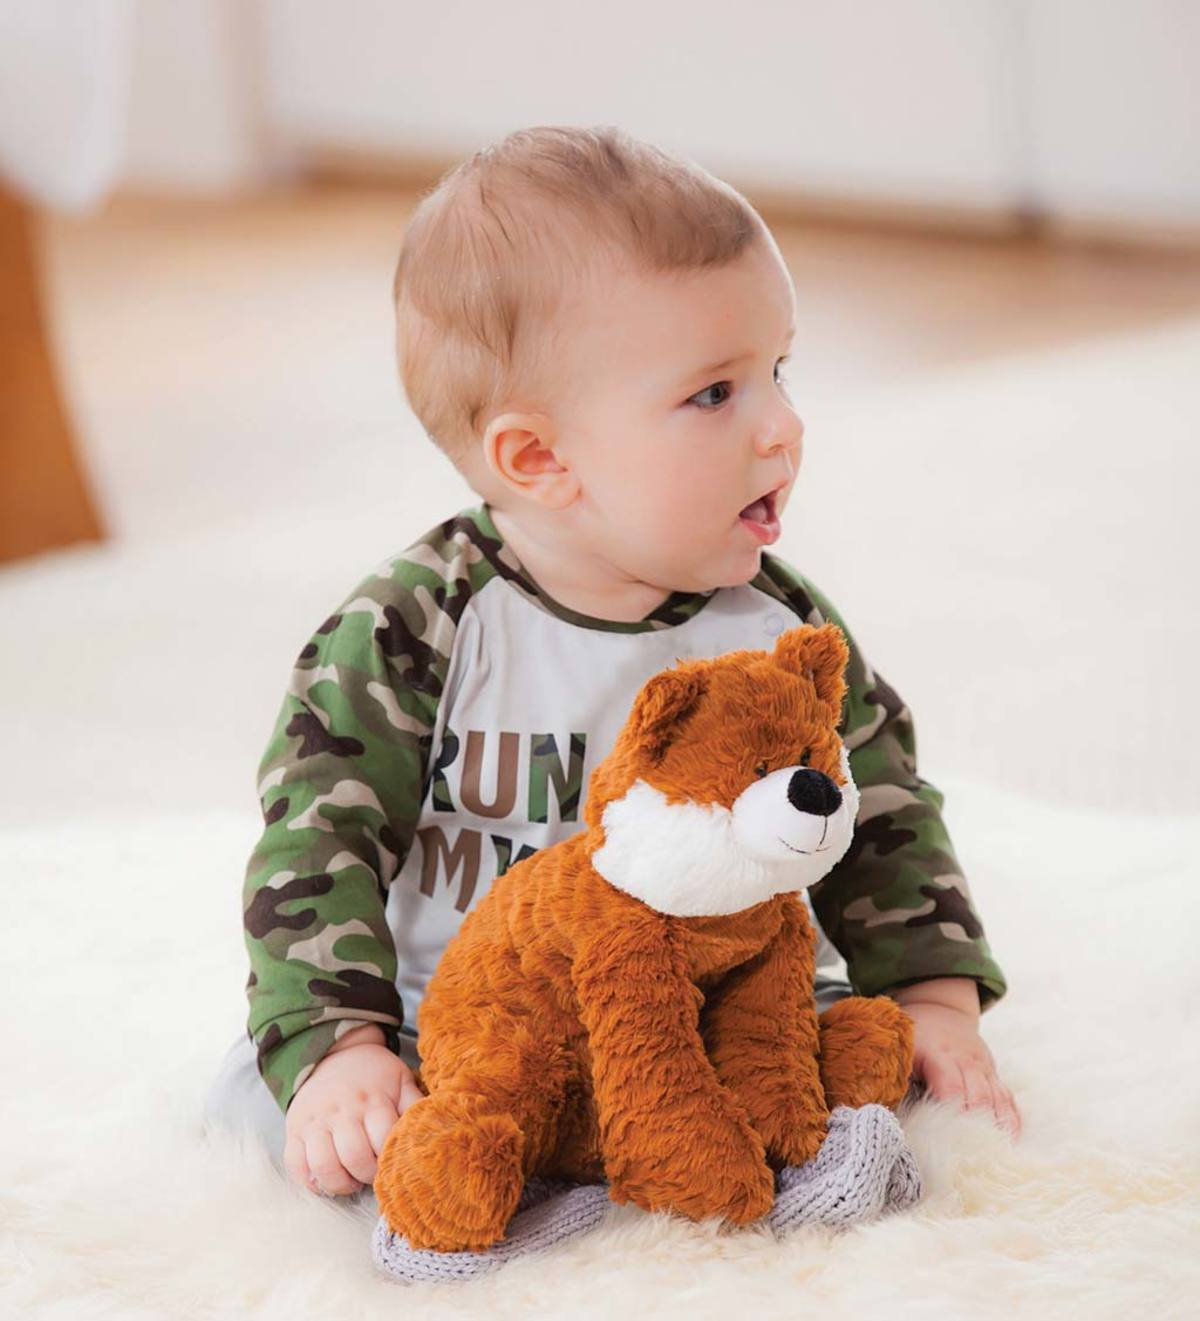 Little Fox Cuddly Plush Stuffed Animal